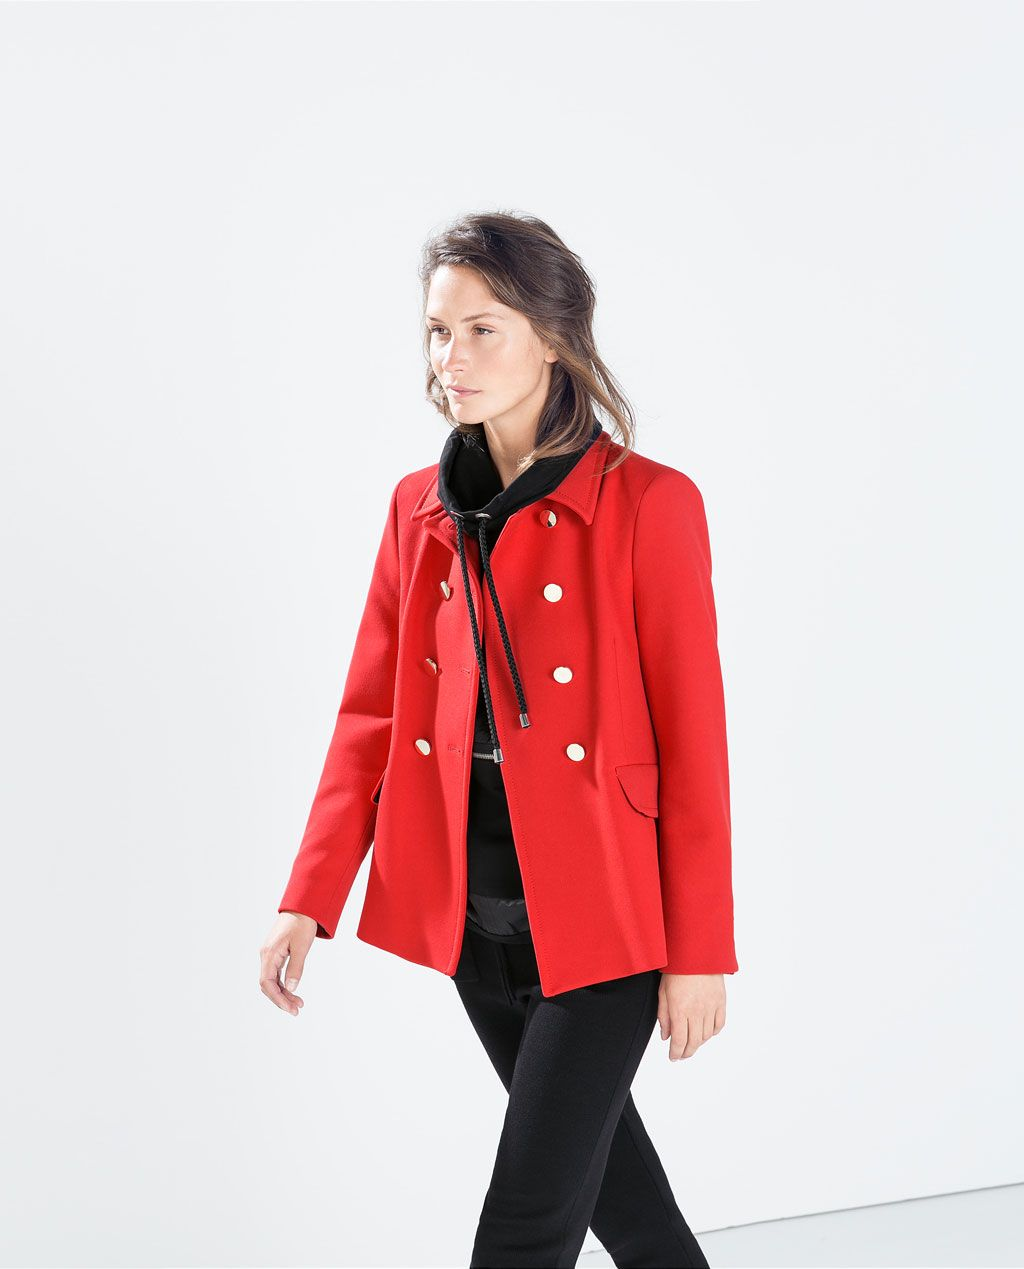 4a4a6dab314 ZARA - NEW THIS WEEK - DOUBLE BREASTED COAT